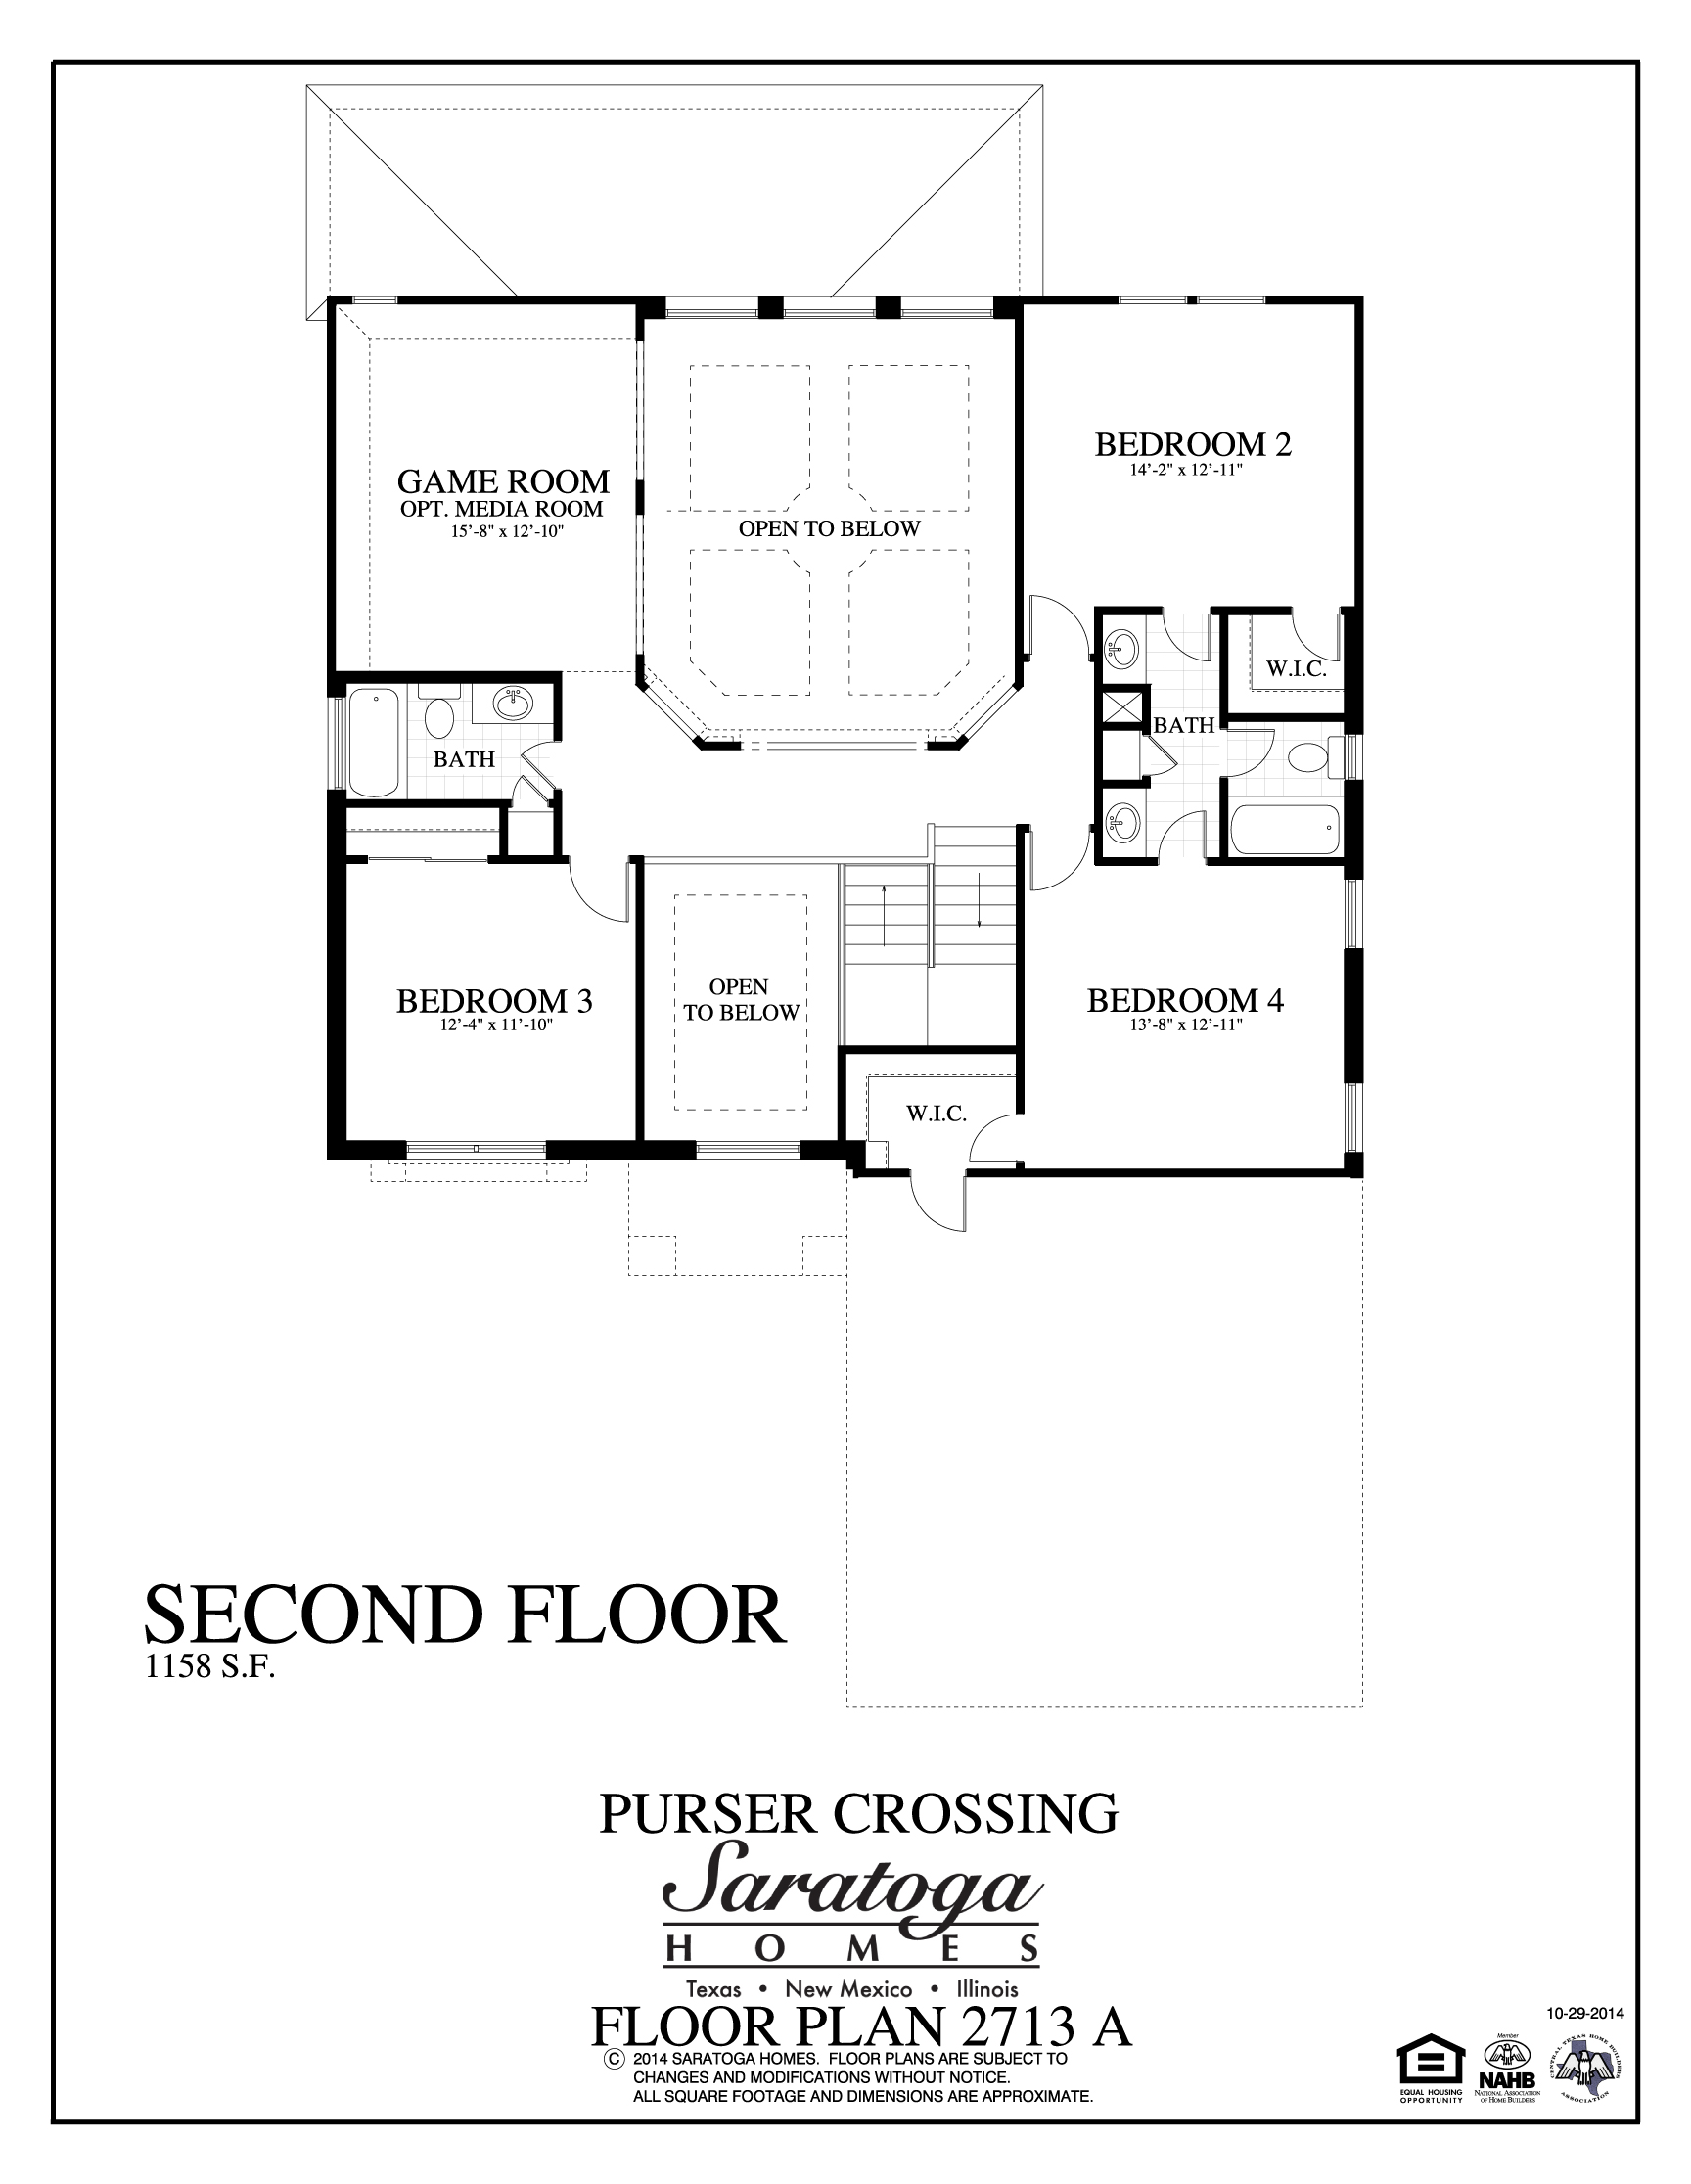 Plan 2713 a saratoga homes killeen for Second floor design plans